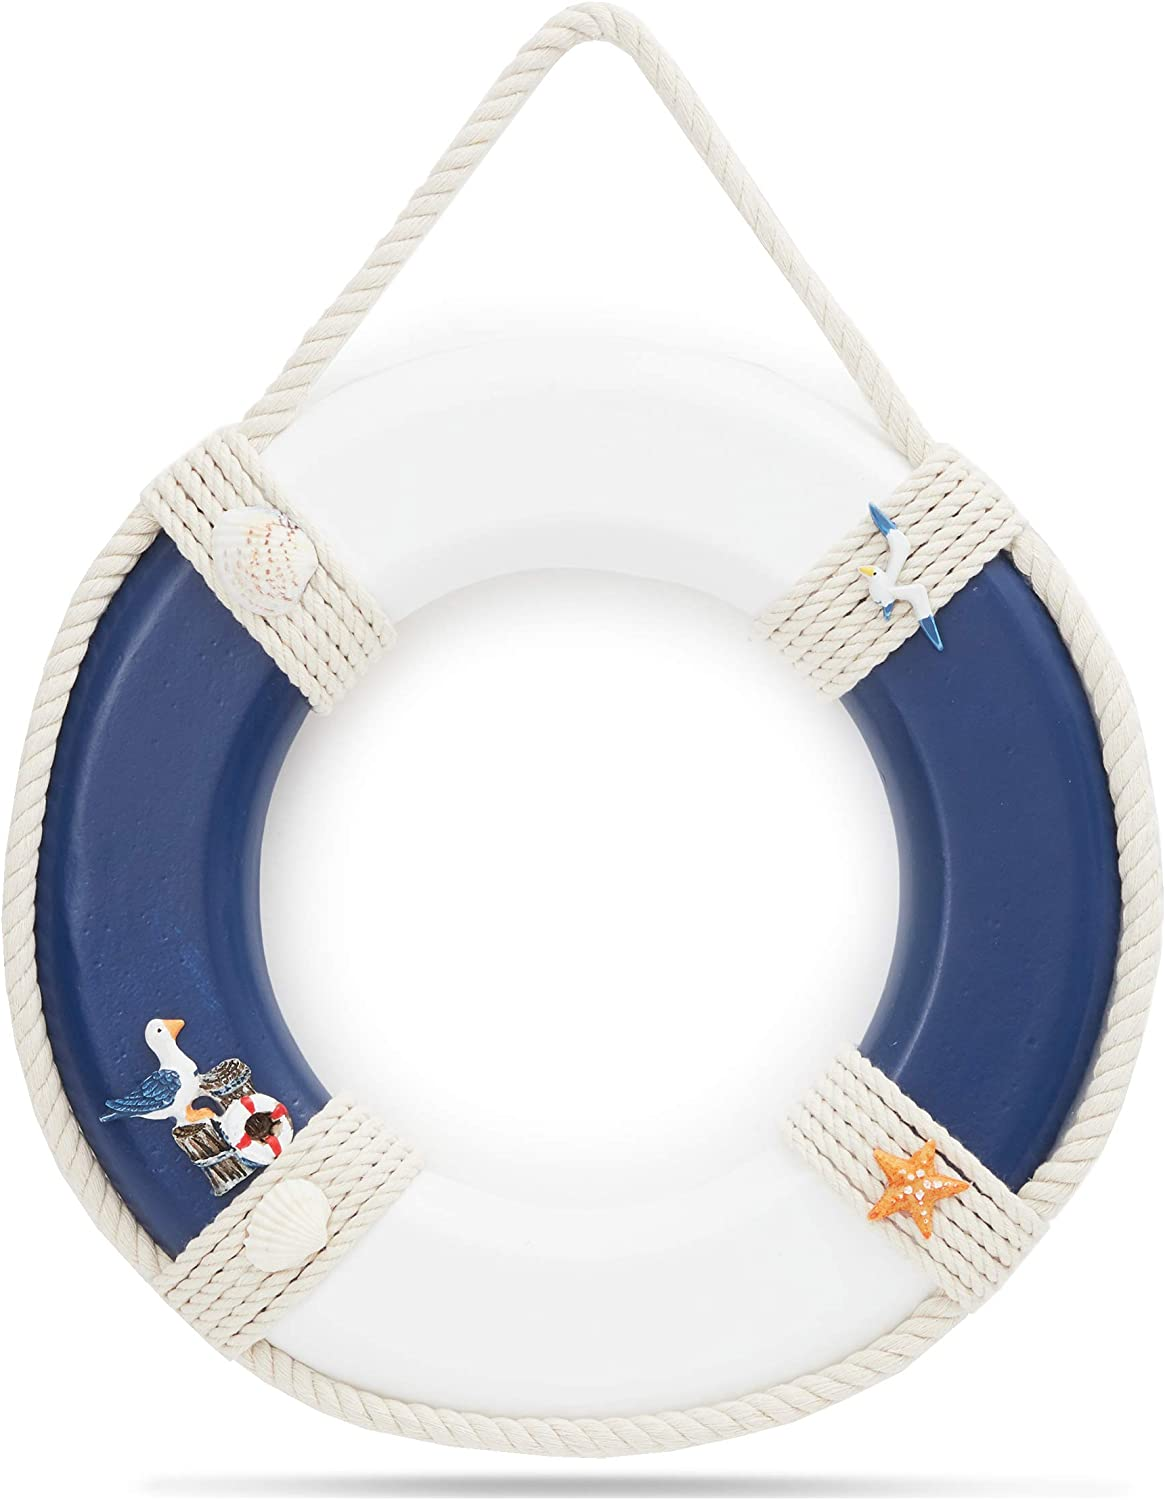 Life Preserver Ring Decoration, Nautical Wall Decor (11 x 11 In)